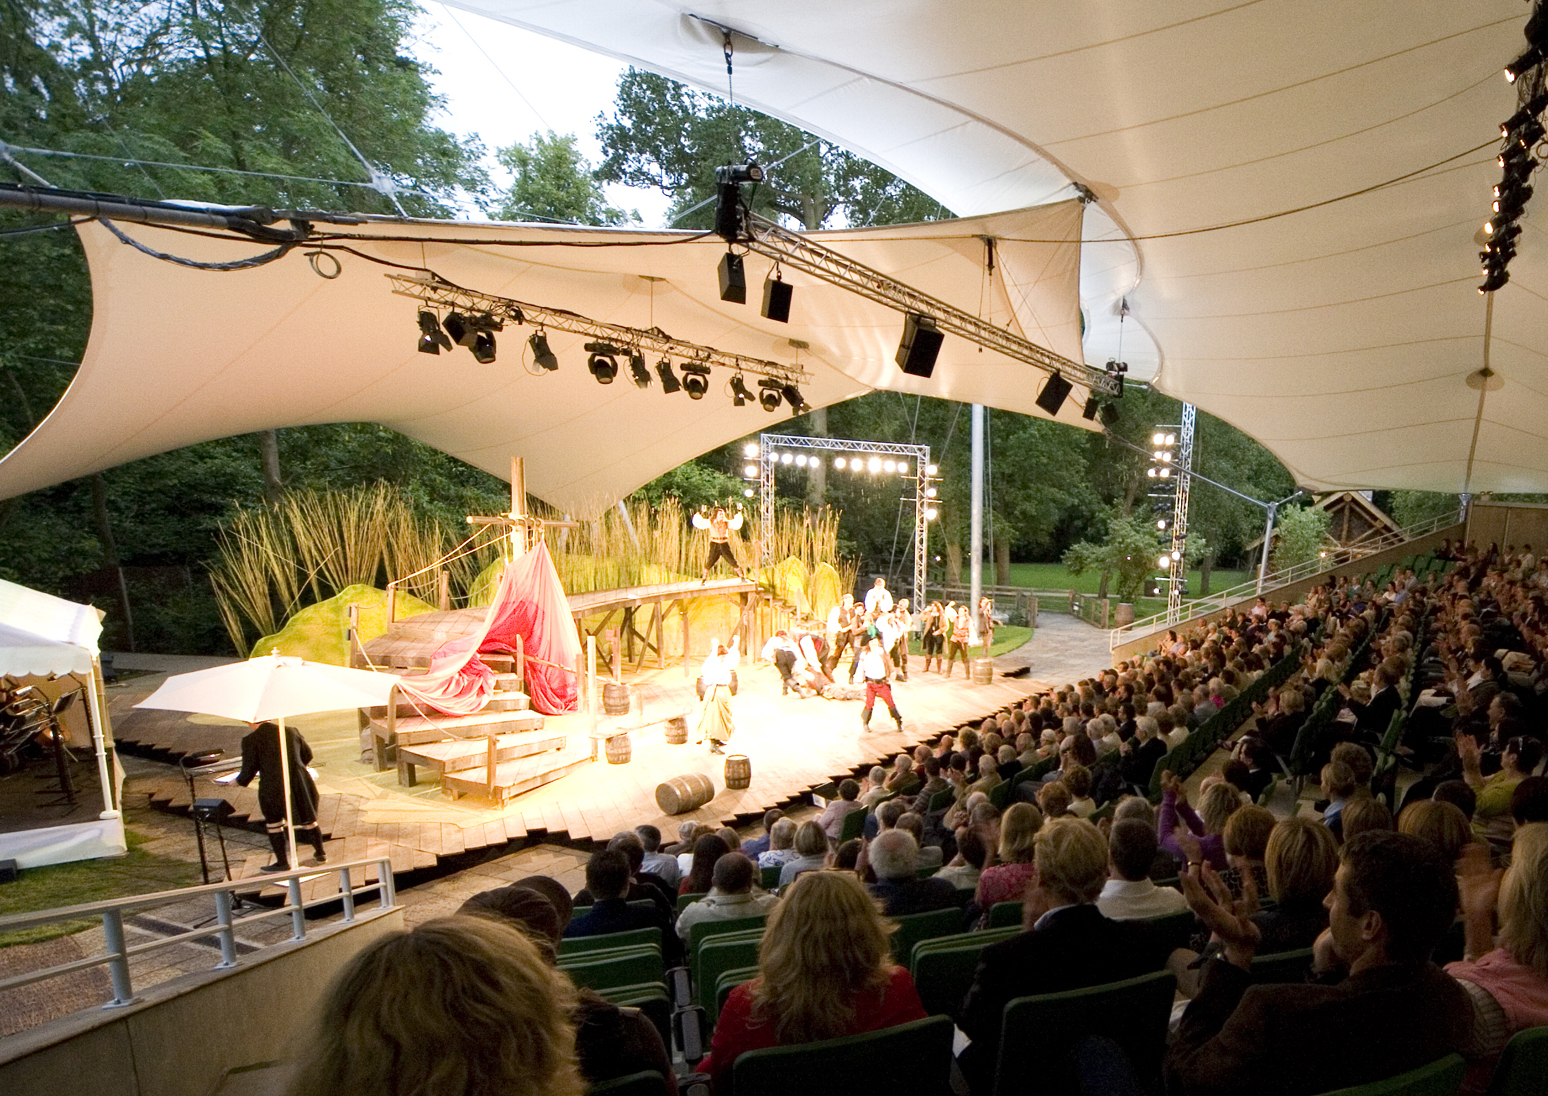 The outdoor theatre at Kilworth House Theatre